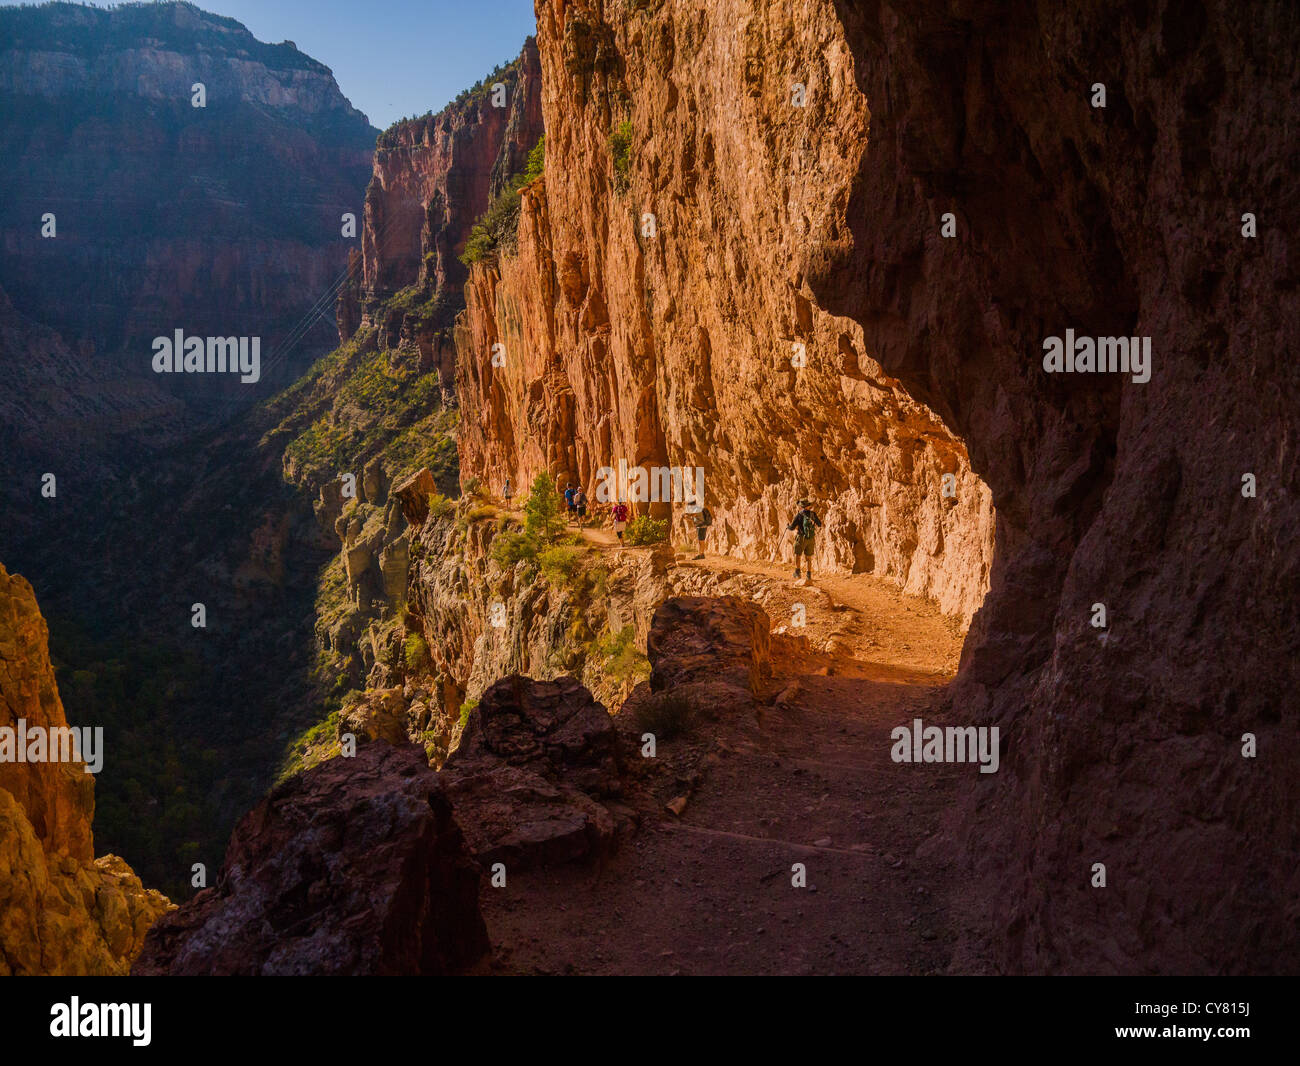 North Kaibab Trail in Grand Canyon National Park - Stock Image